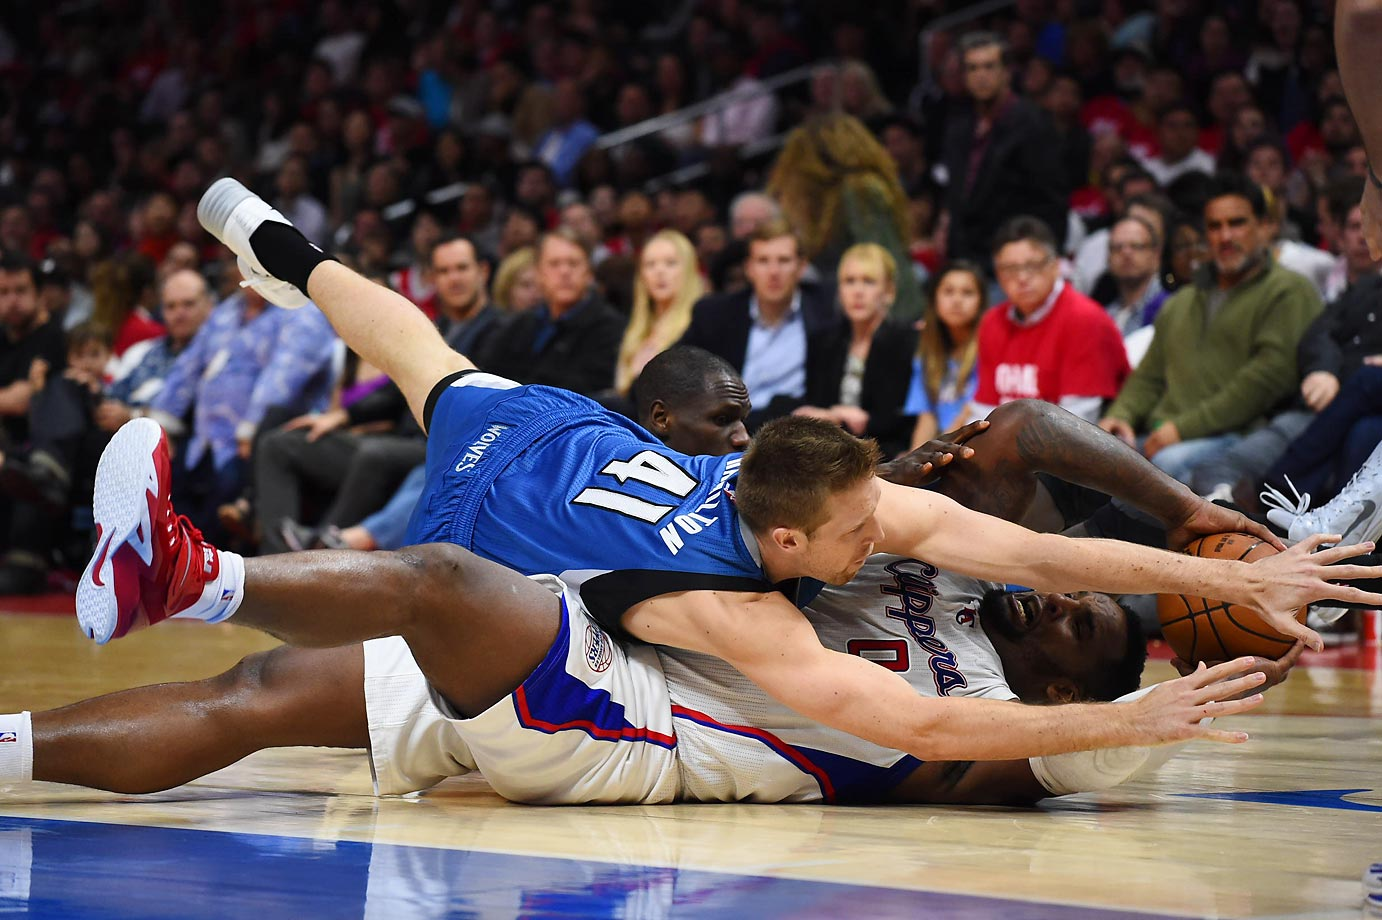 Justin Hamilton of the Timberwolves dives on top of Glen Davis of the Clippers in an attempt to get the ball.